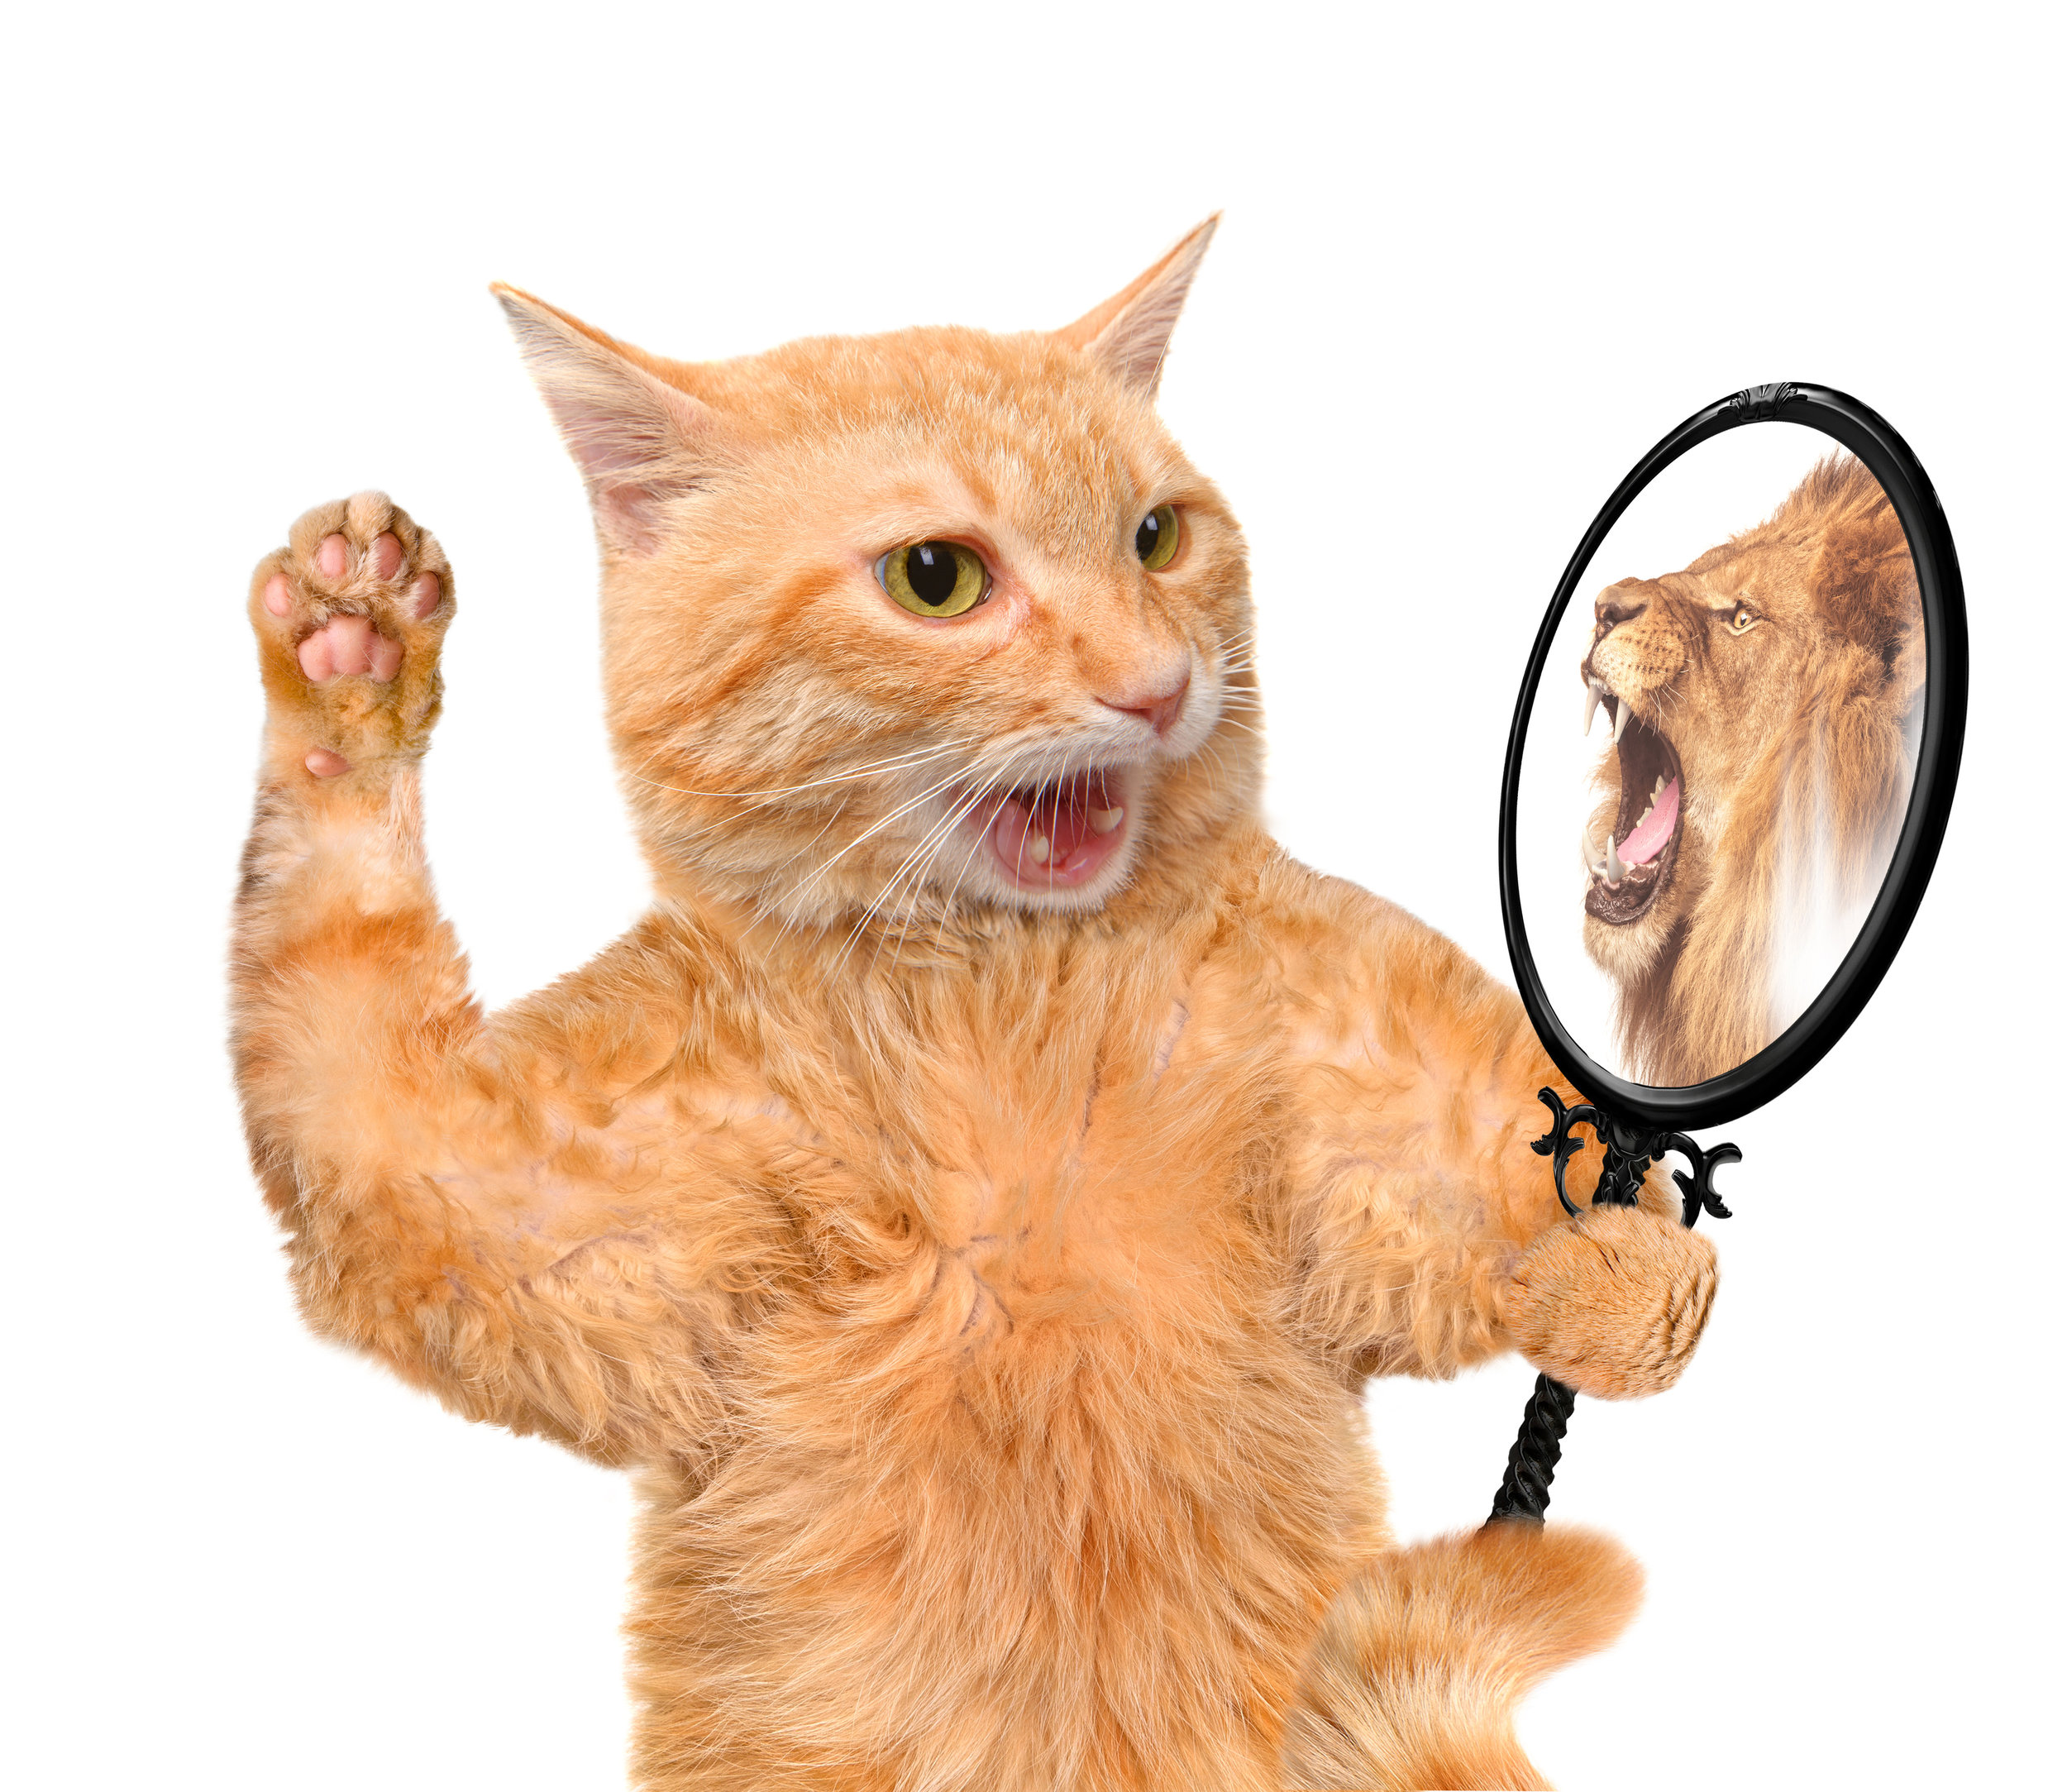 Cat mirror lion.jpg